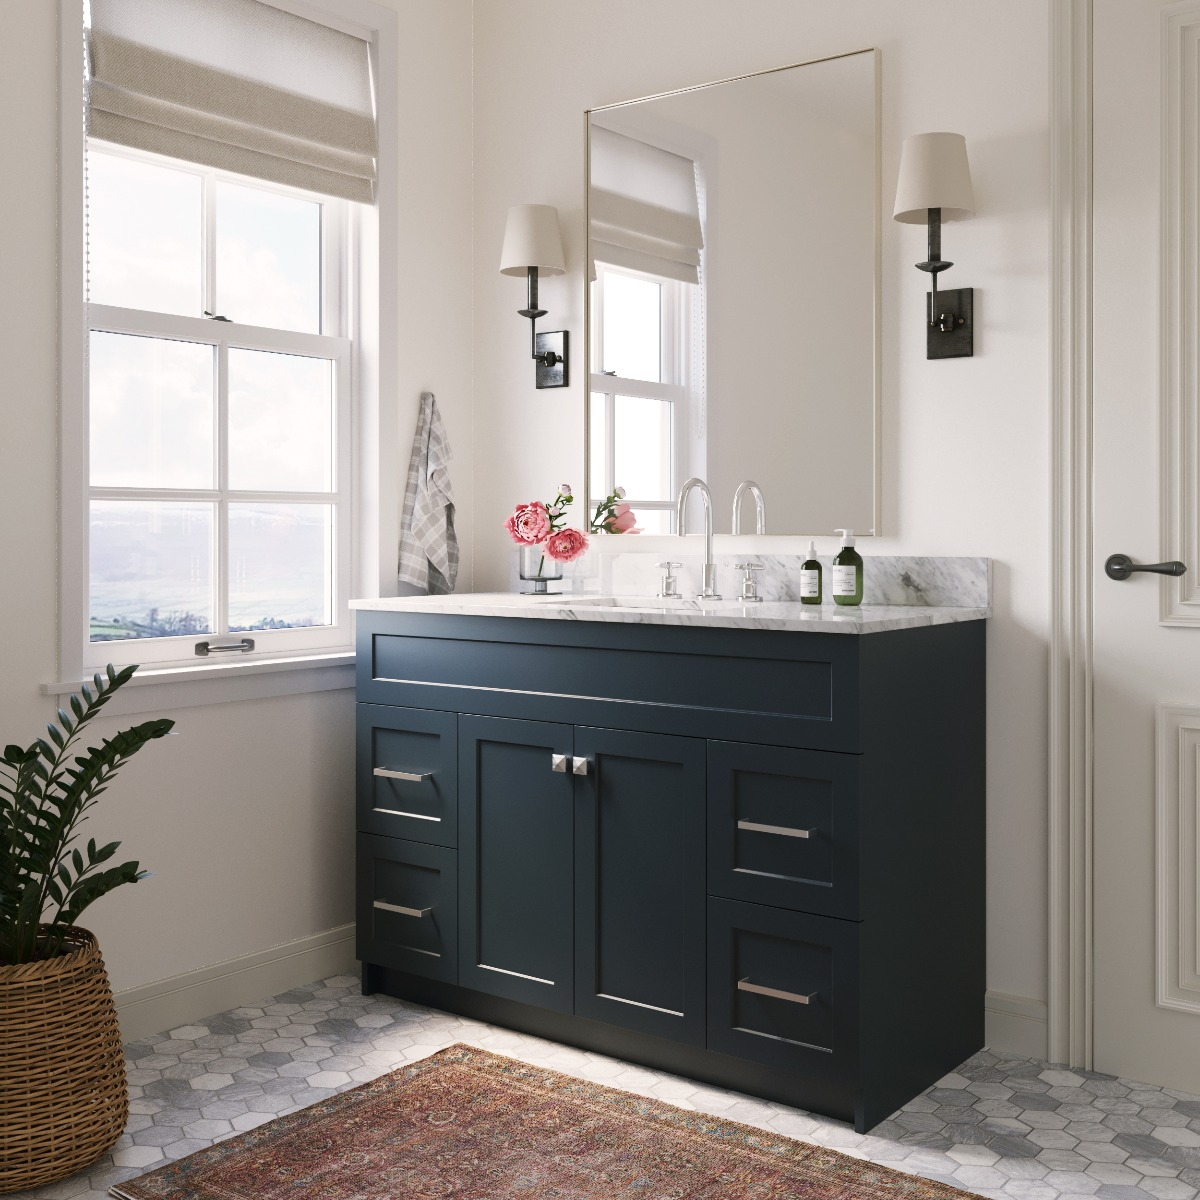 Ariel Taylor 61 In. Oval Sink Vanity With Carrara White Marble Countertop In Midnight Blue